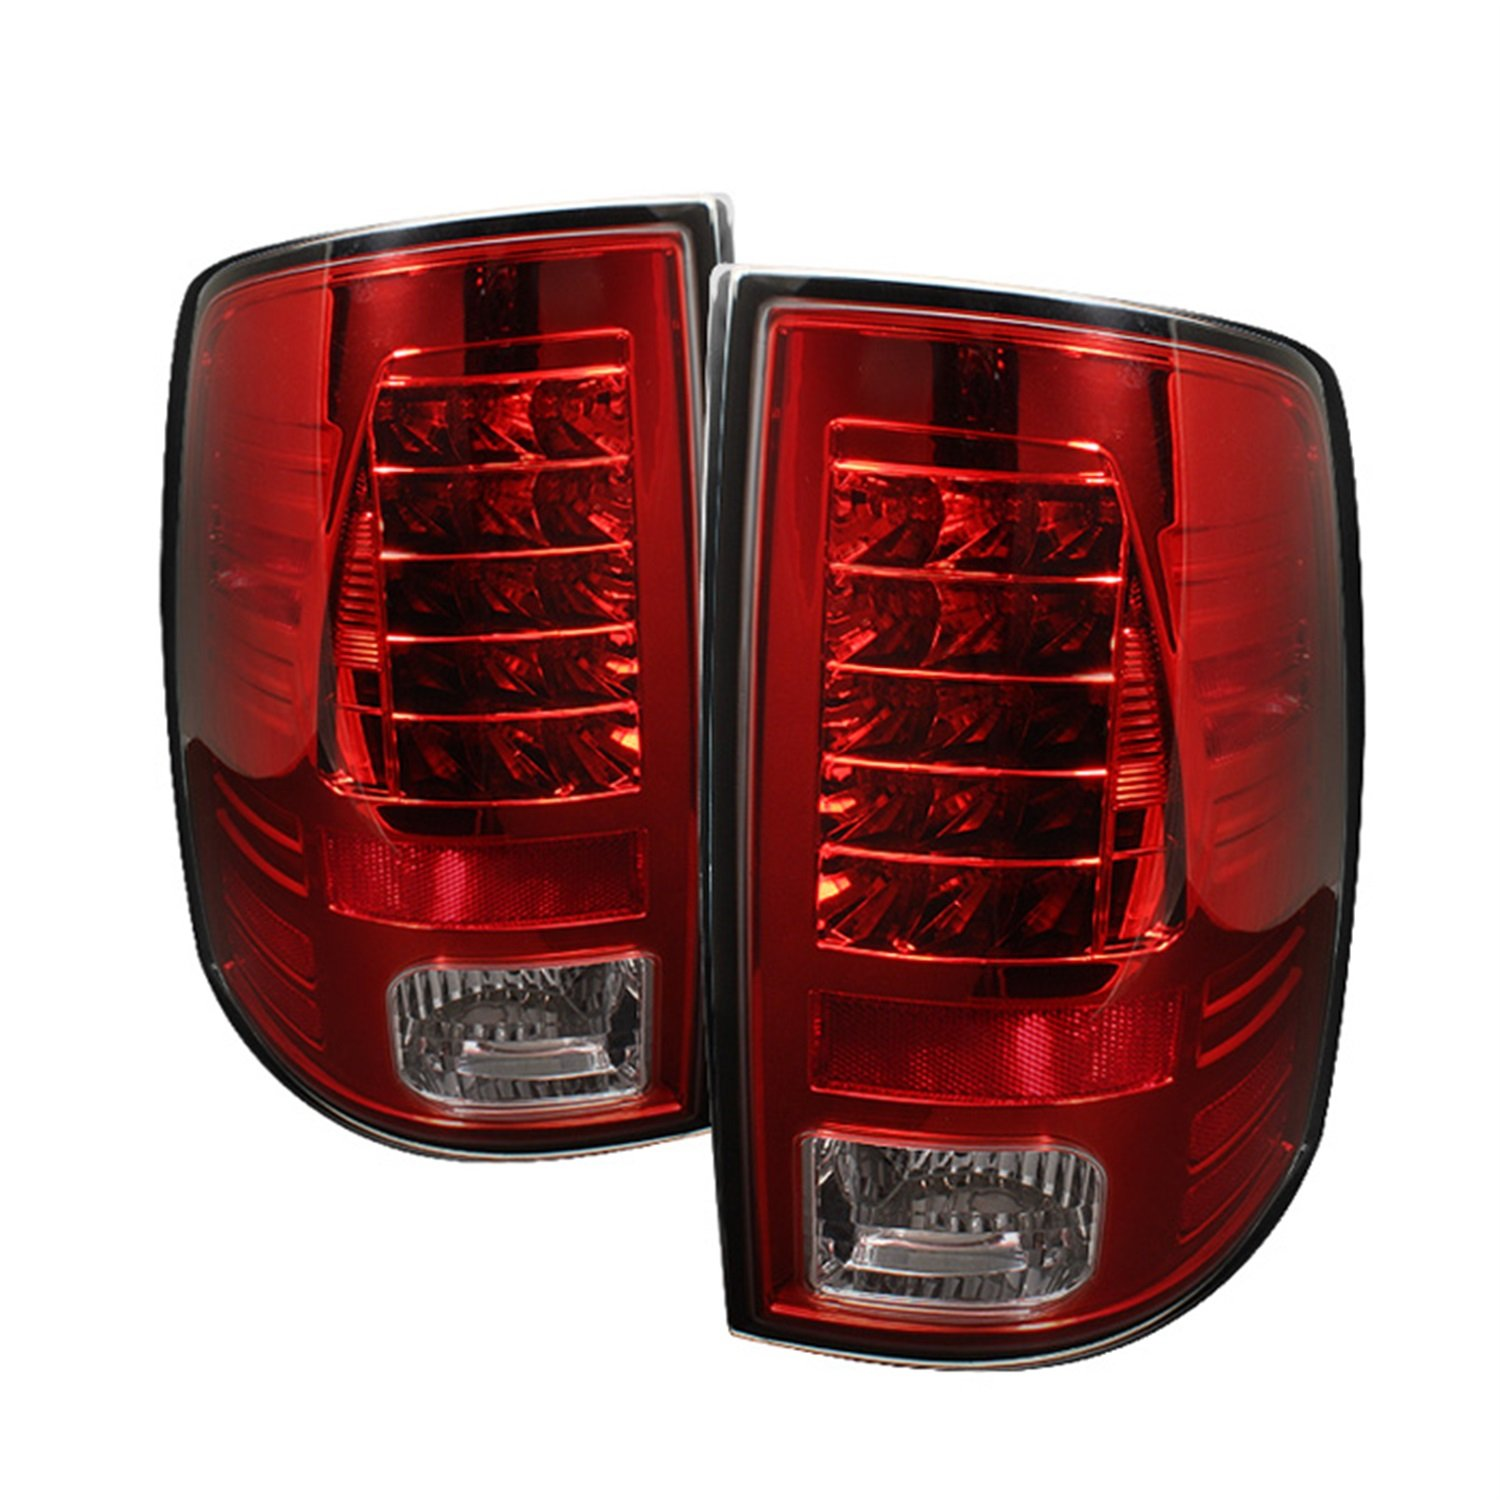 Spyder Auto 111-DRAM09-LED-RC LED Tail Light